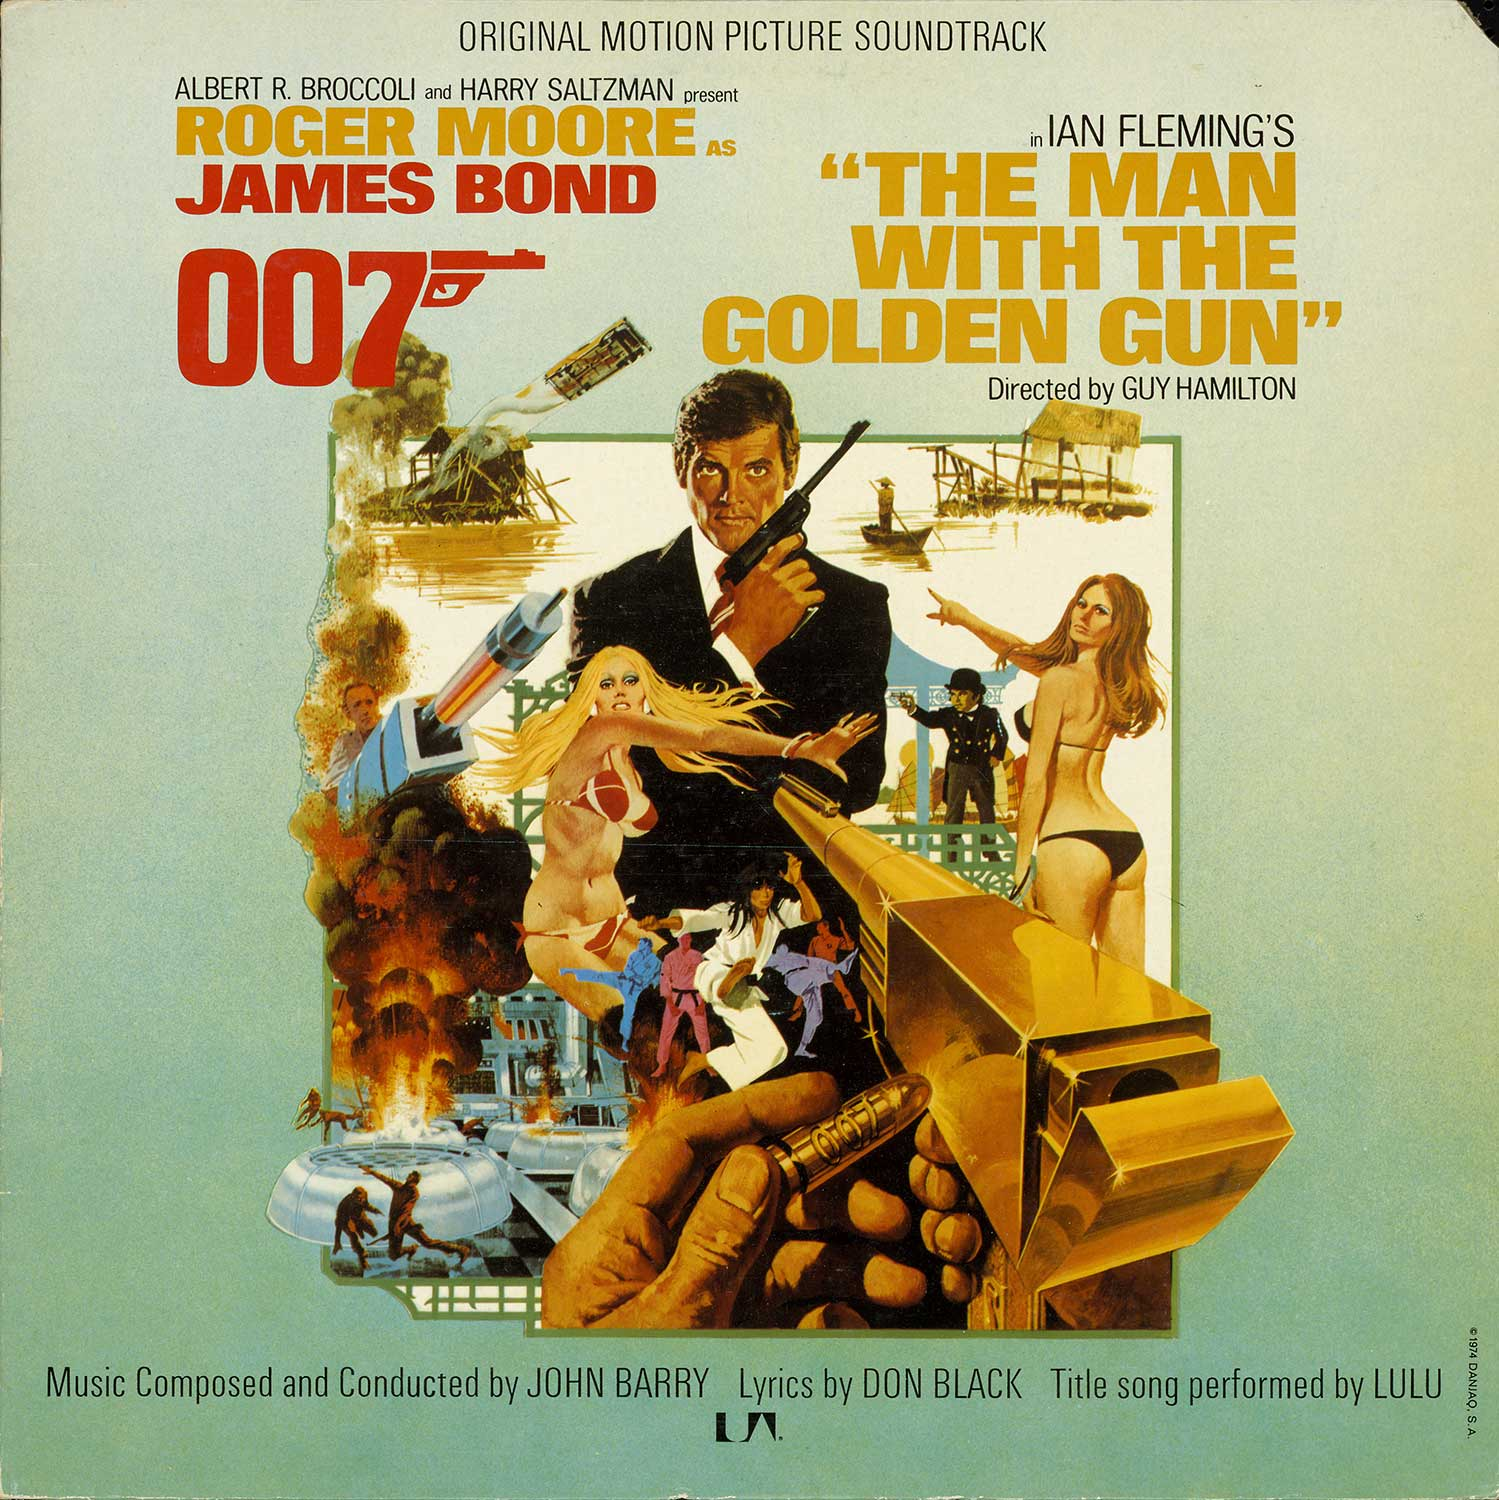 Record album cover, THE MAN WITH THE GOLDEN GUN, 1974.